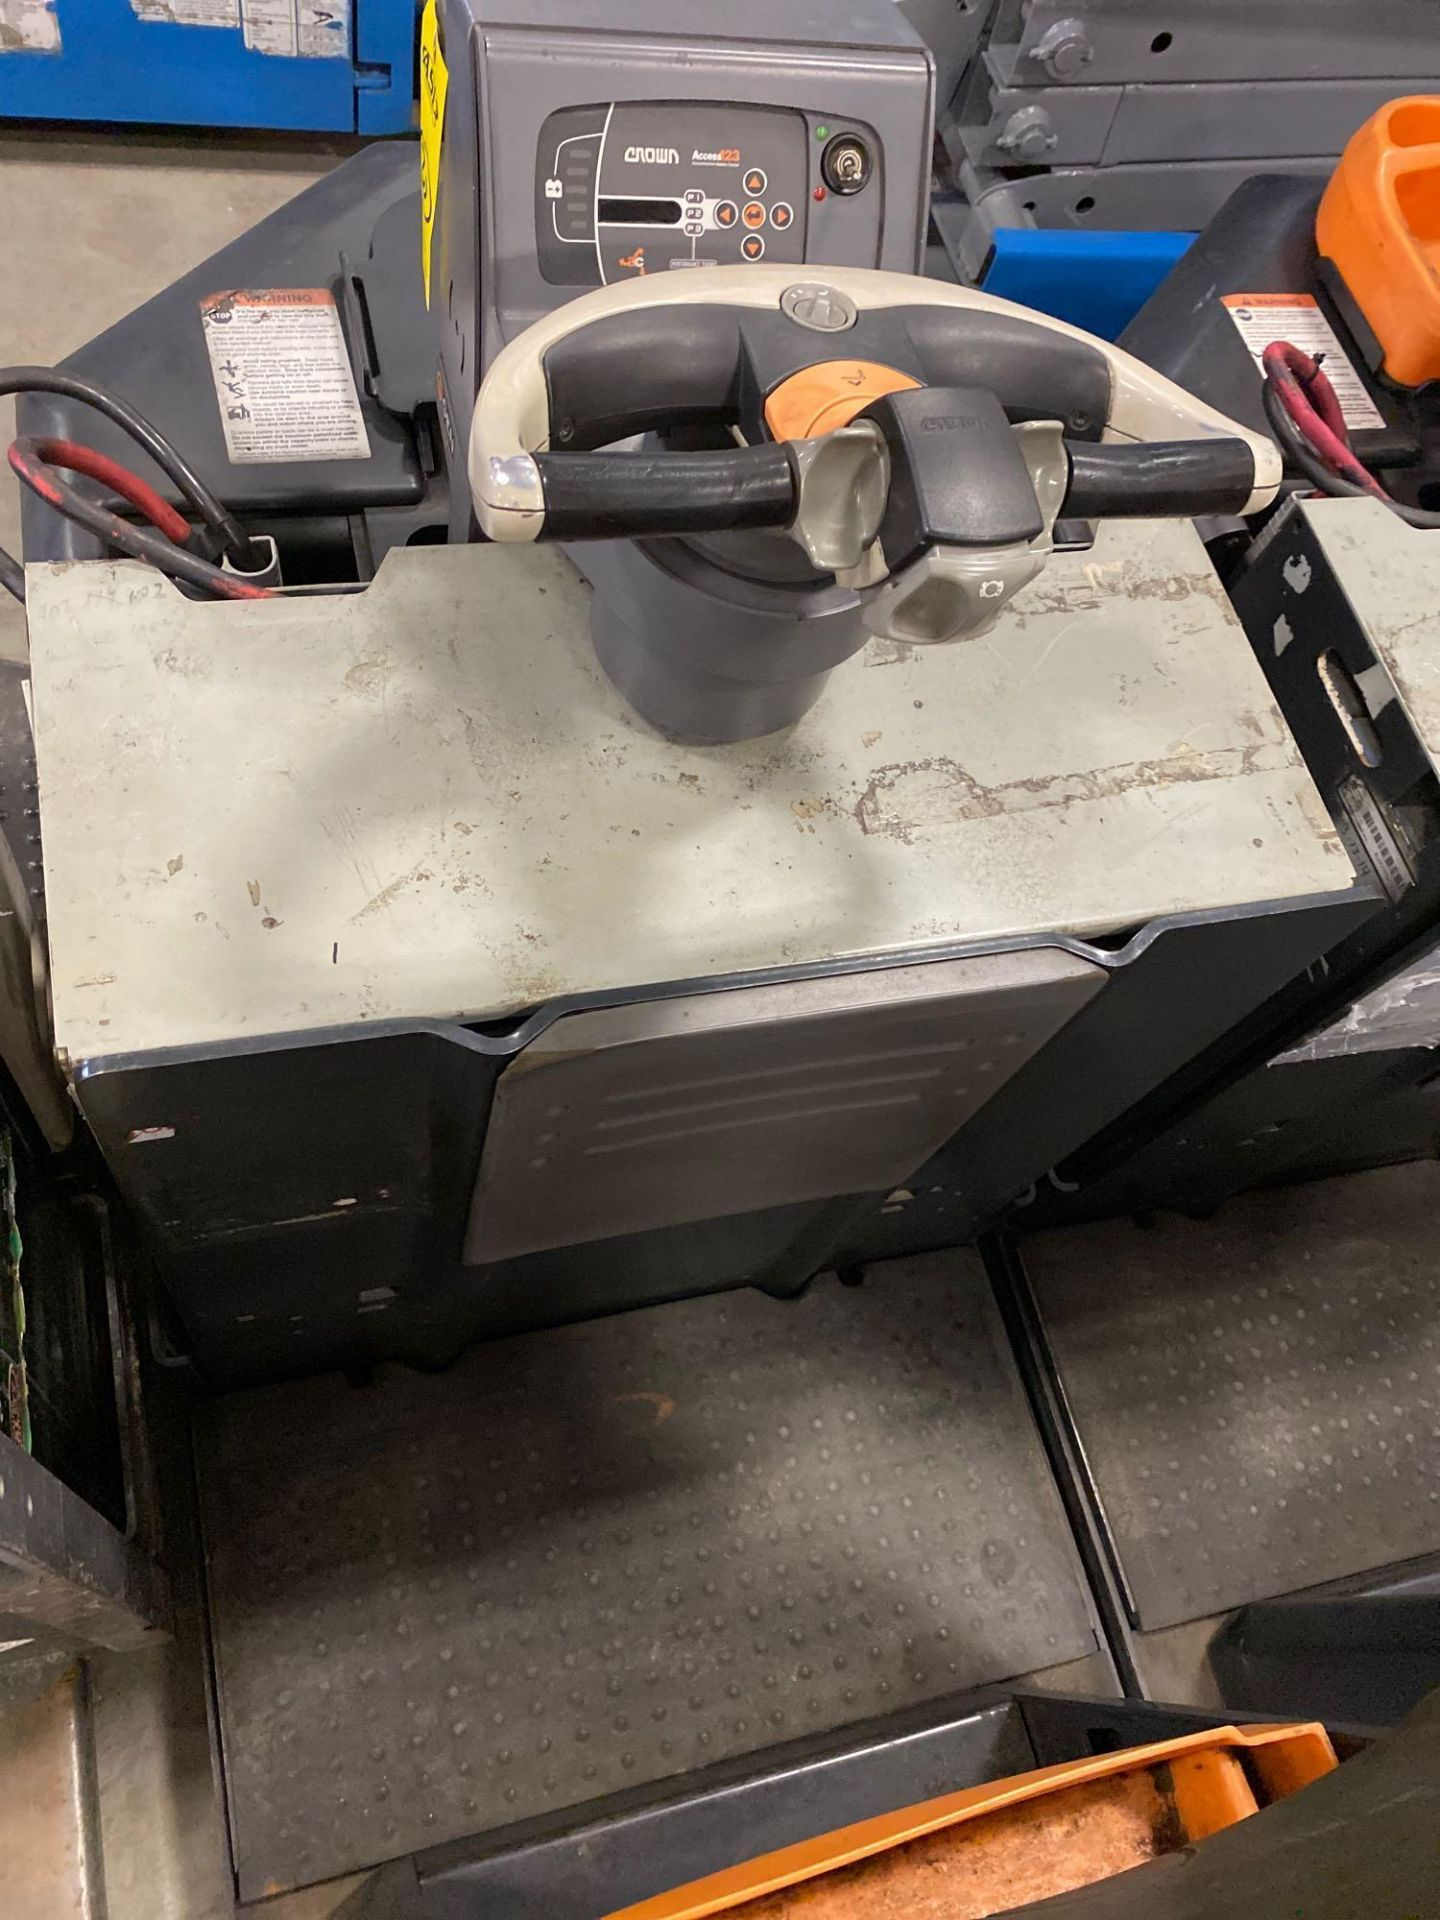 Lot 30 - 2012 CROWN ELECTRIC PALLET JACK, 8,000 LB CAPACITY, MODEL PC4500-80, 24V, RUNS AND OPERATES